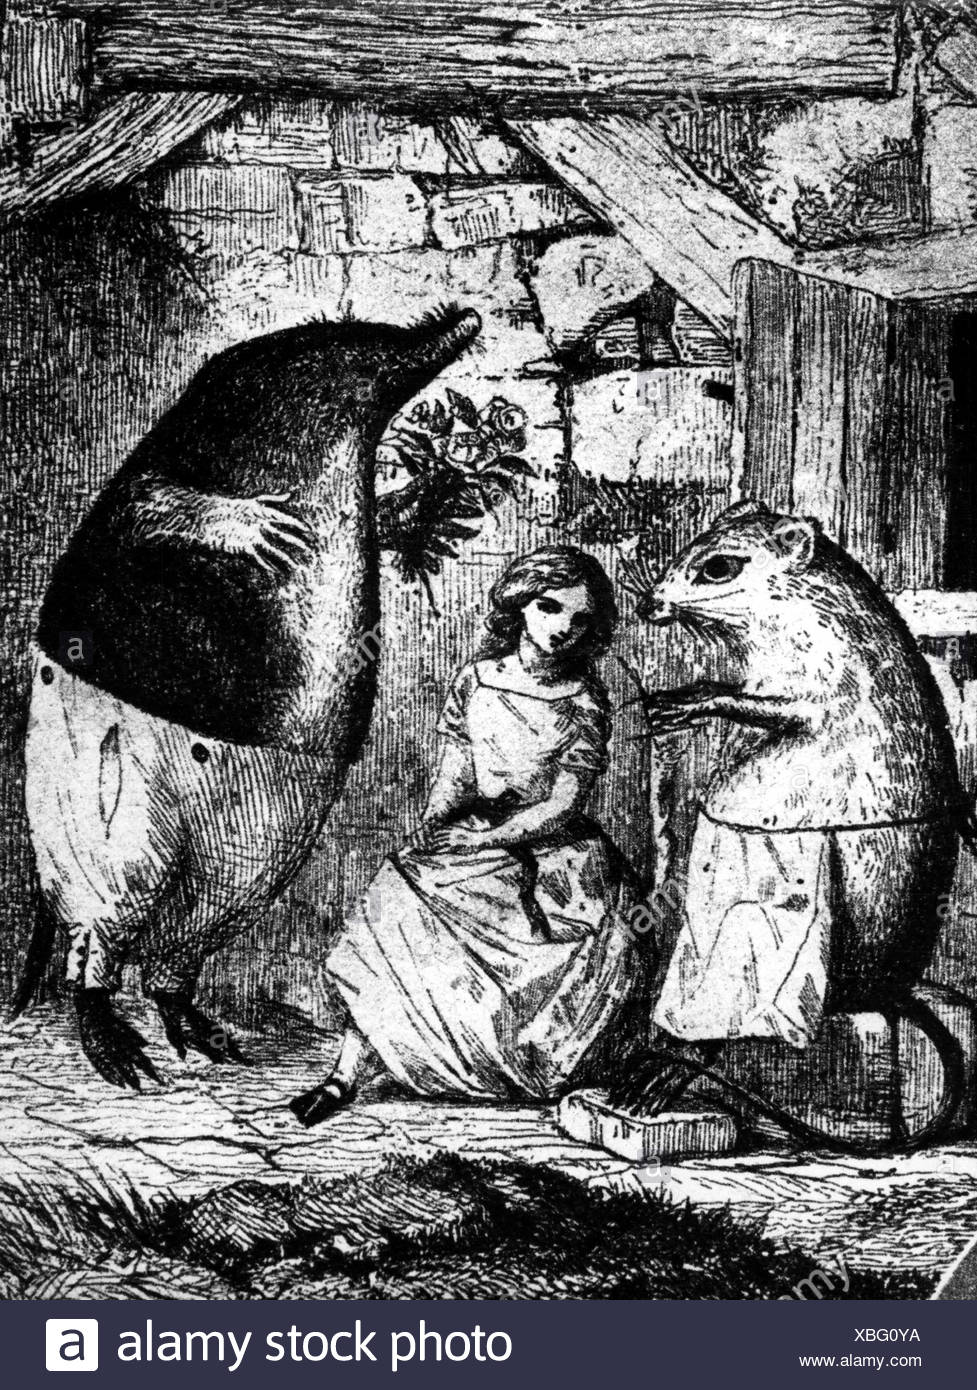 Andersen, Hans Christian, 2.4.1805 - 4.8.1875, Danish author / writer, fairytale 'Thumbelina', drawing, Additional-Rights-Clearances-NA - Stock Image